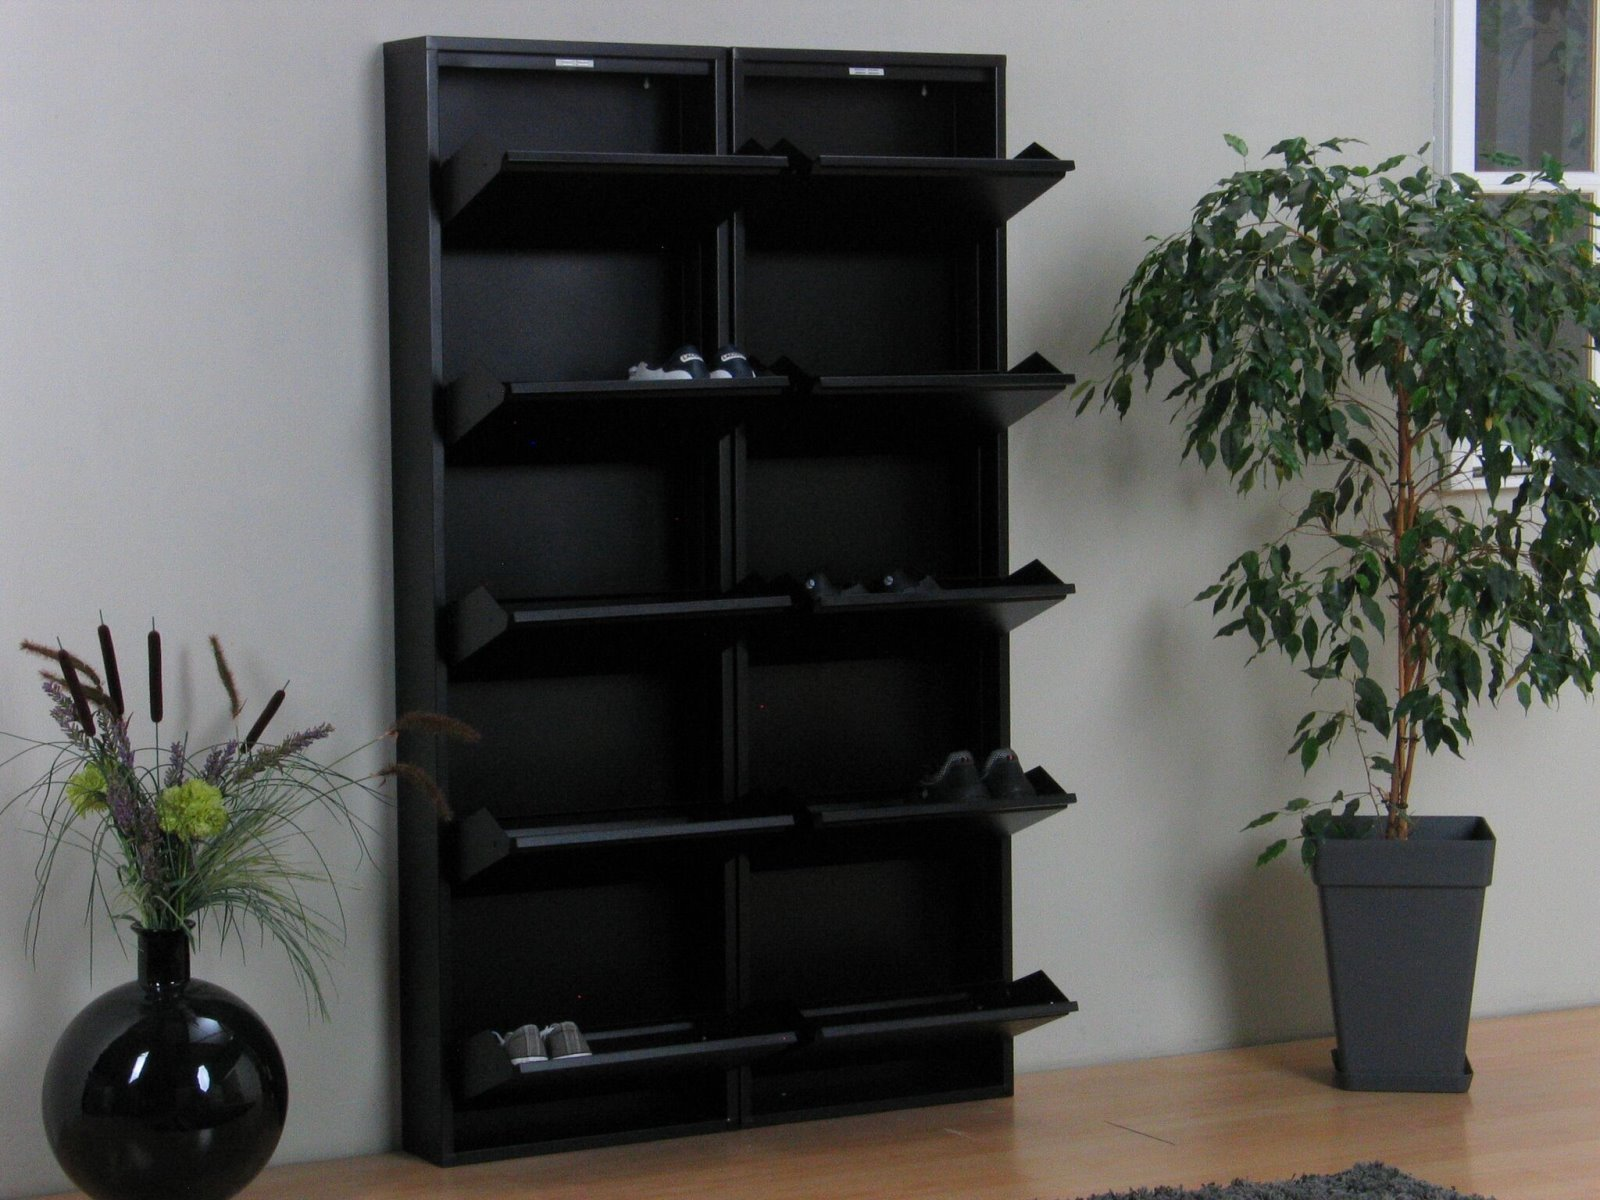 xl schuhschrank pisa 10 klappen metall schuhkipper schuhregal schuhablage schrank m bel wohnen. Black Bedroom Furniture Sets. Home Design Ideas